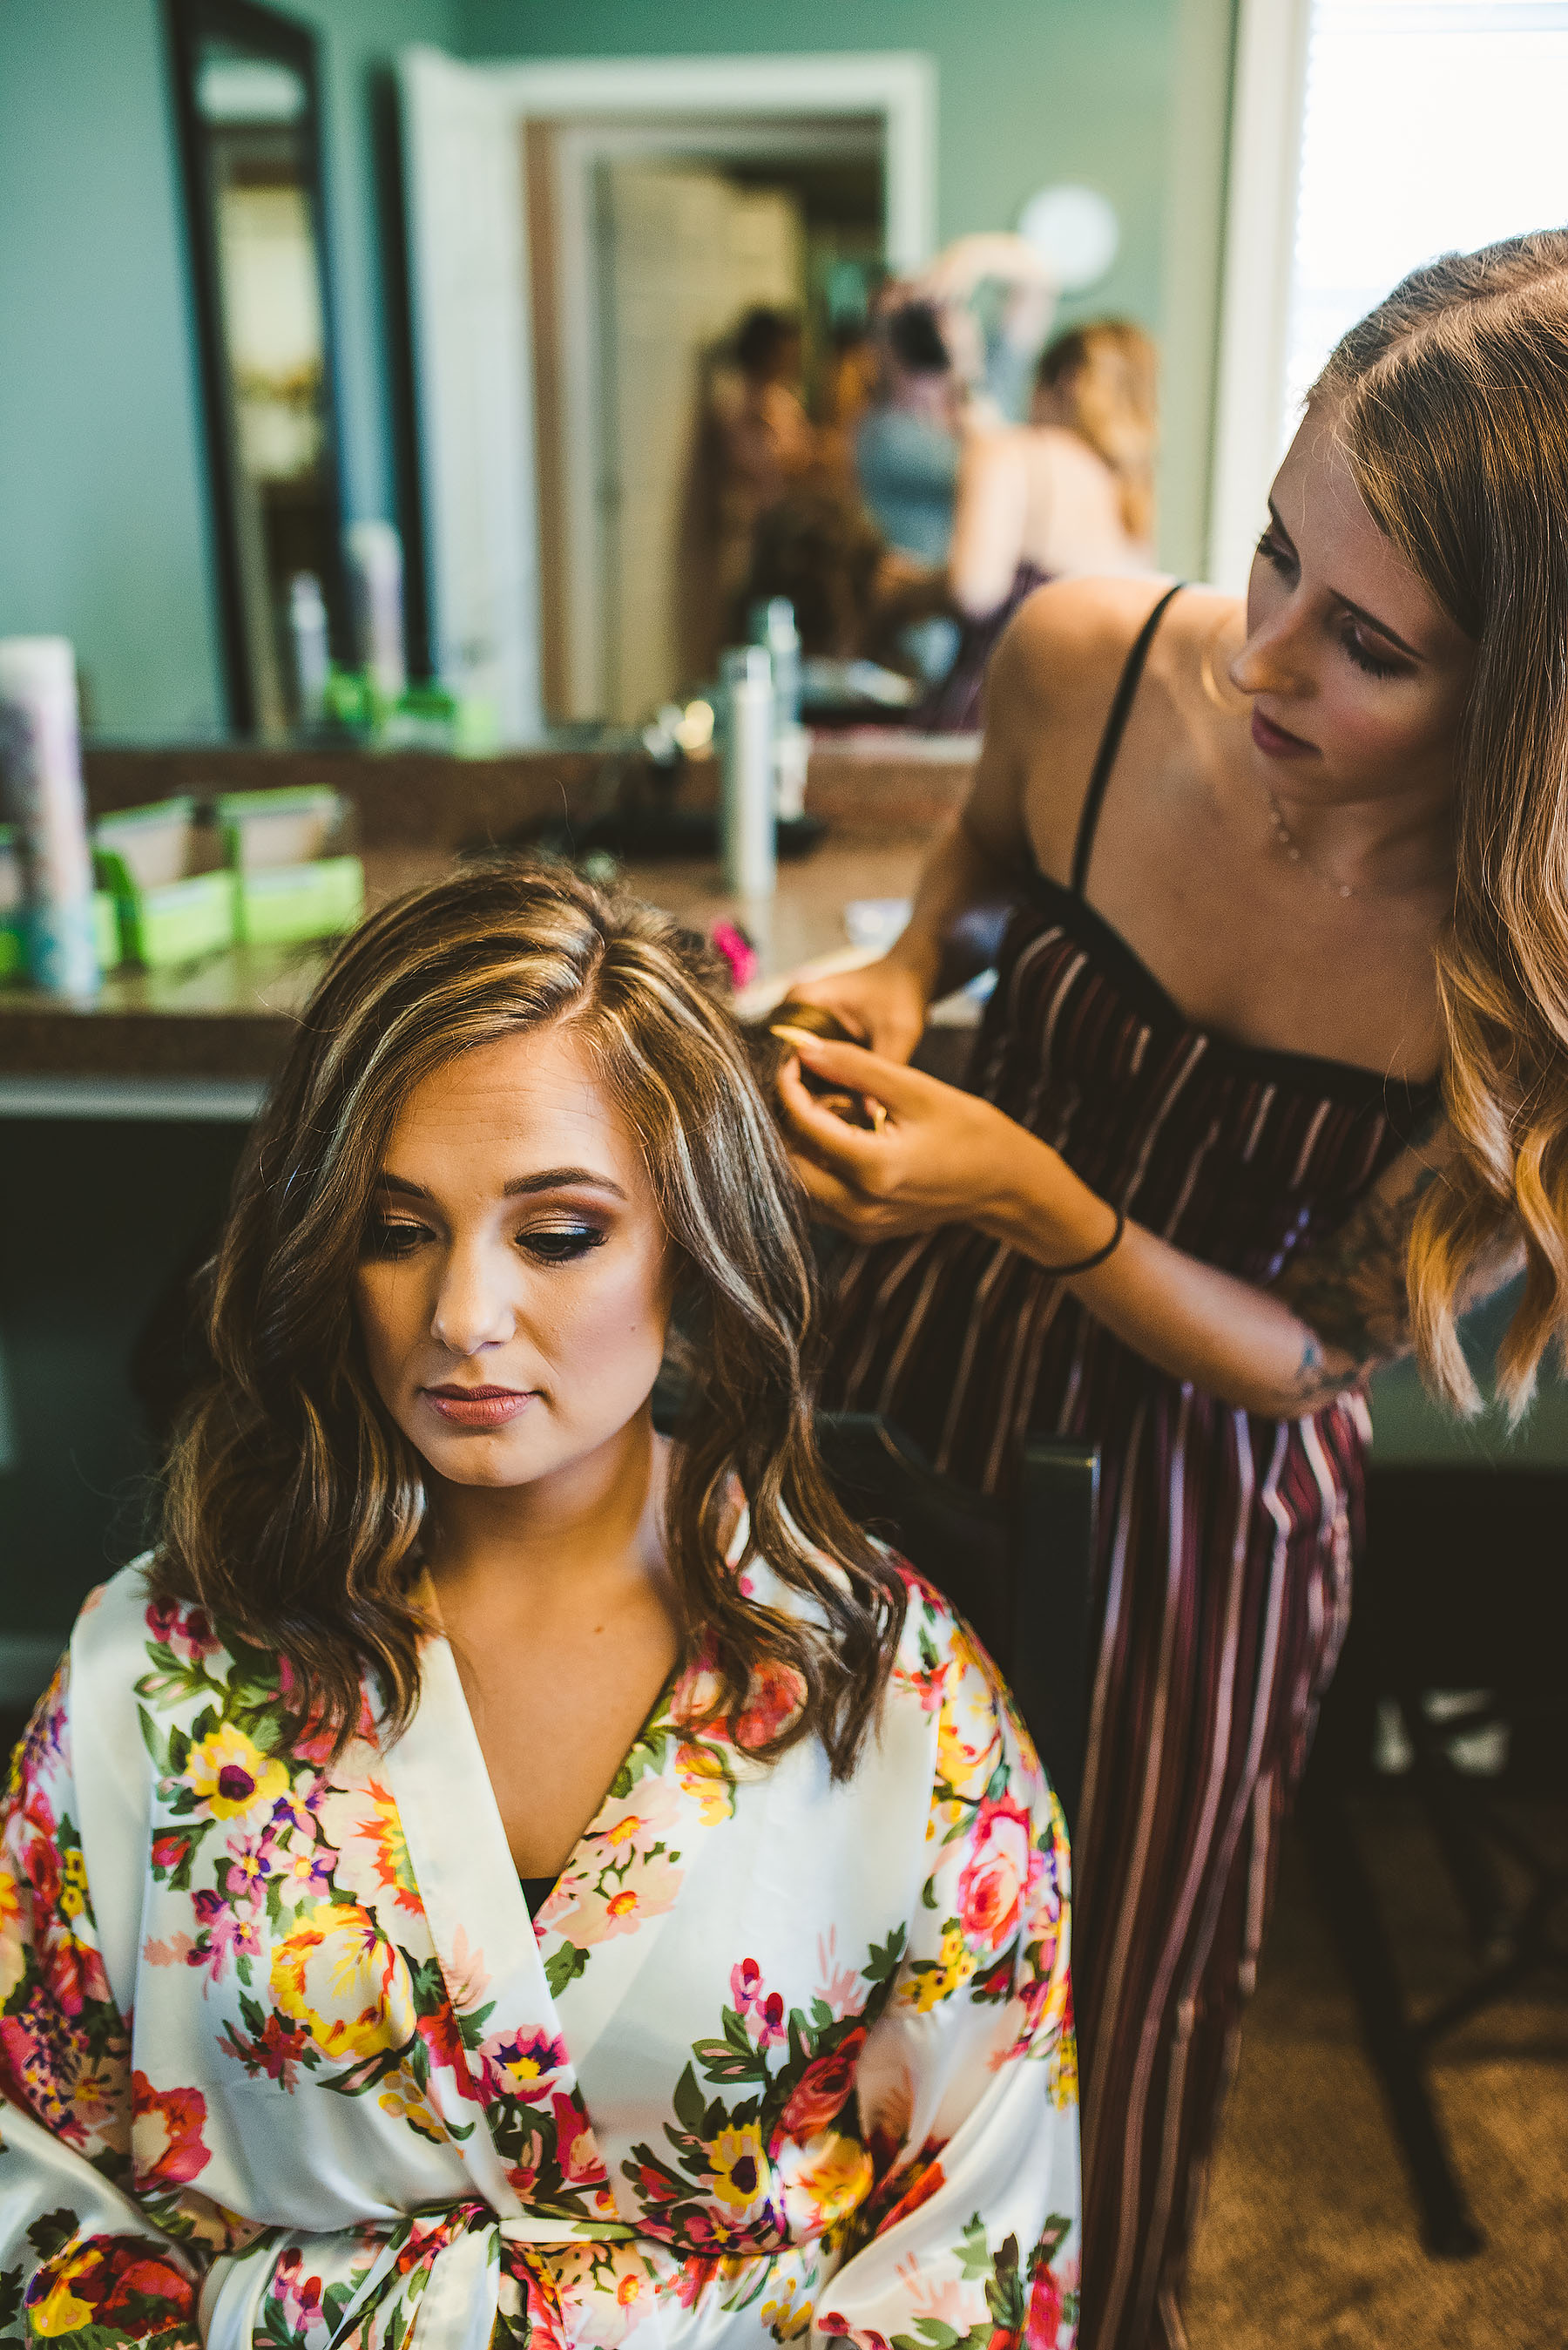 1. Hair & Makeup shouldn't take more than 3 hours. Discuss these times with your hair and makeup artist so everyone is on the same page and they can bring enough artists for your bridal party and let them know you are on this schedule.